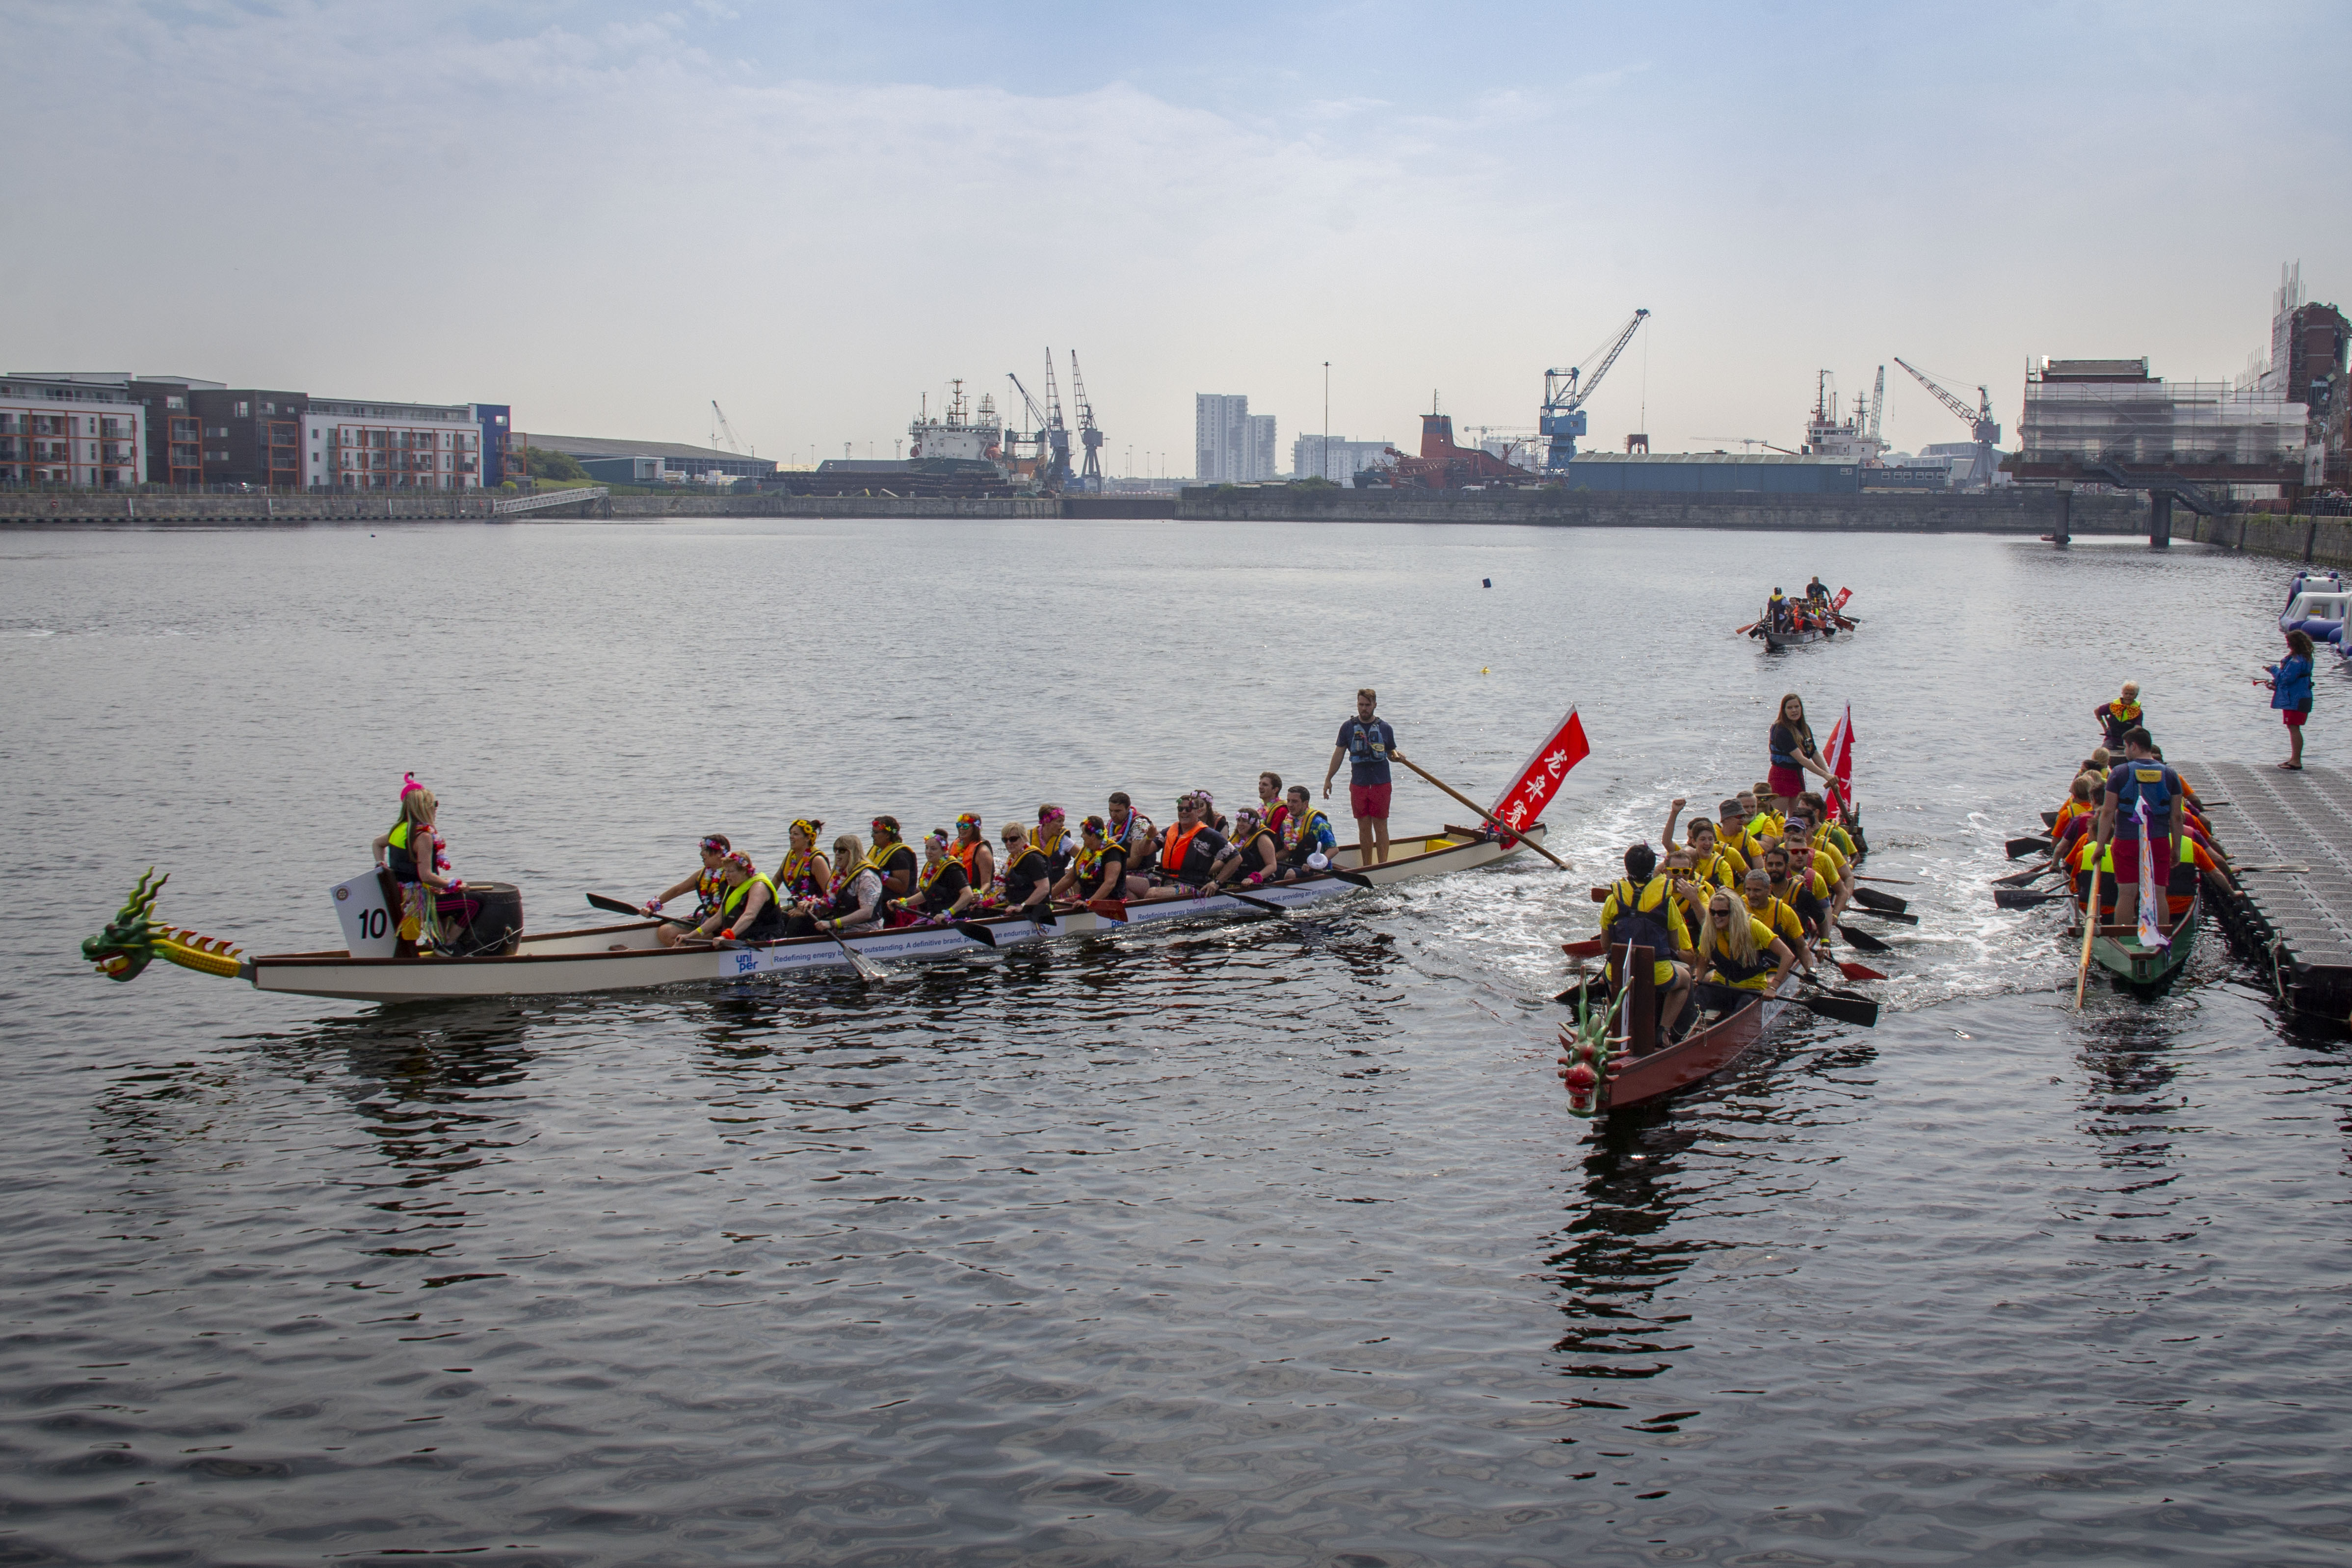 2018 Dragon Boat Challenge photos - 270518 60D 2380 Edited